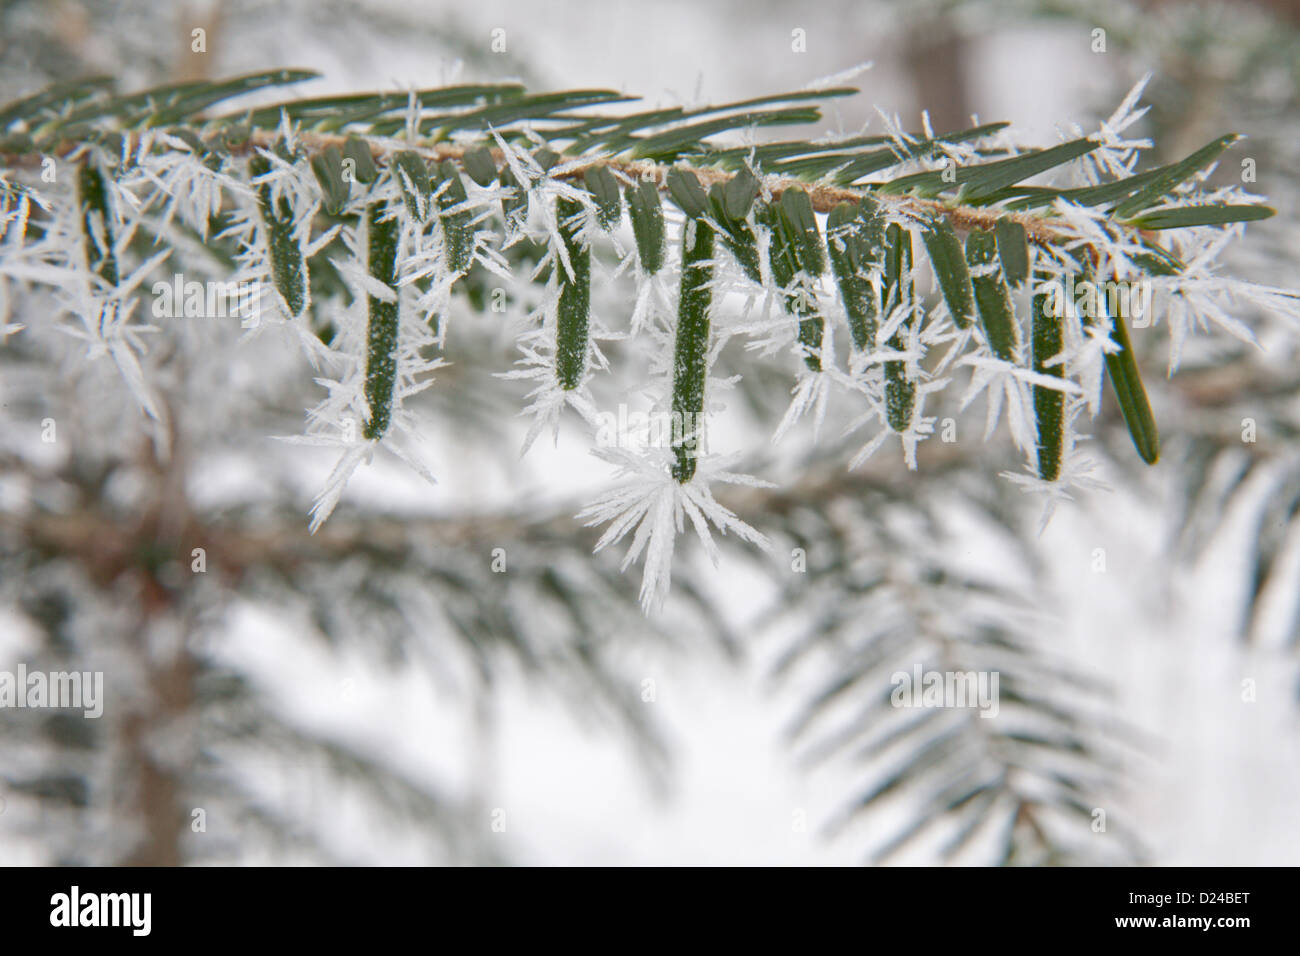 Detail of spray of yew in the icing - Stock Image